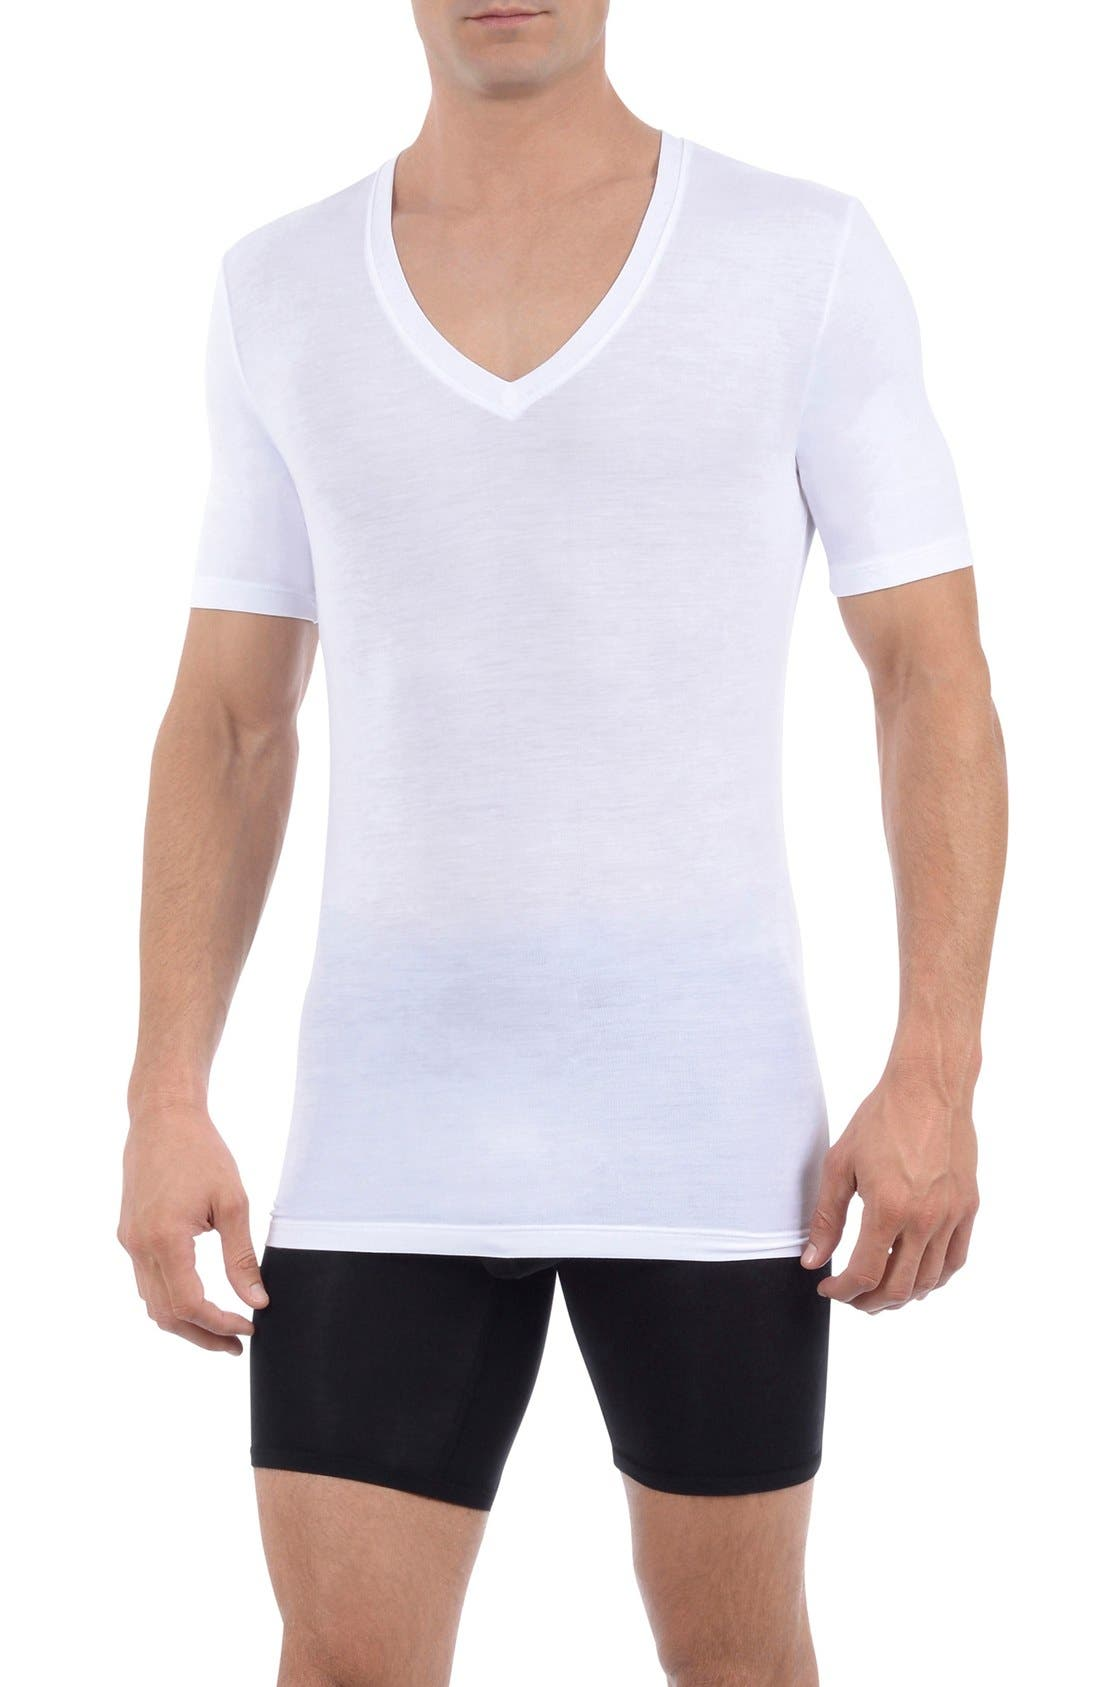 Discount Low Shipping Tommy John Cotton Blend V-Neck T-Shirt Big Sale 4naSCc7